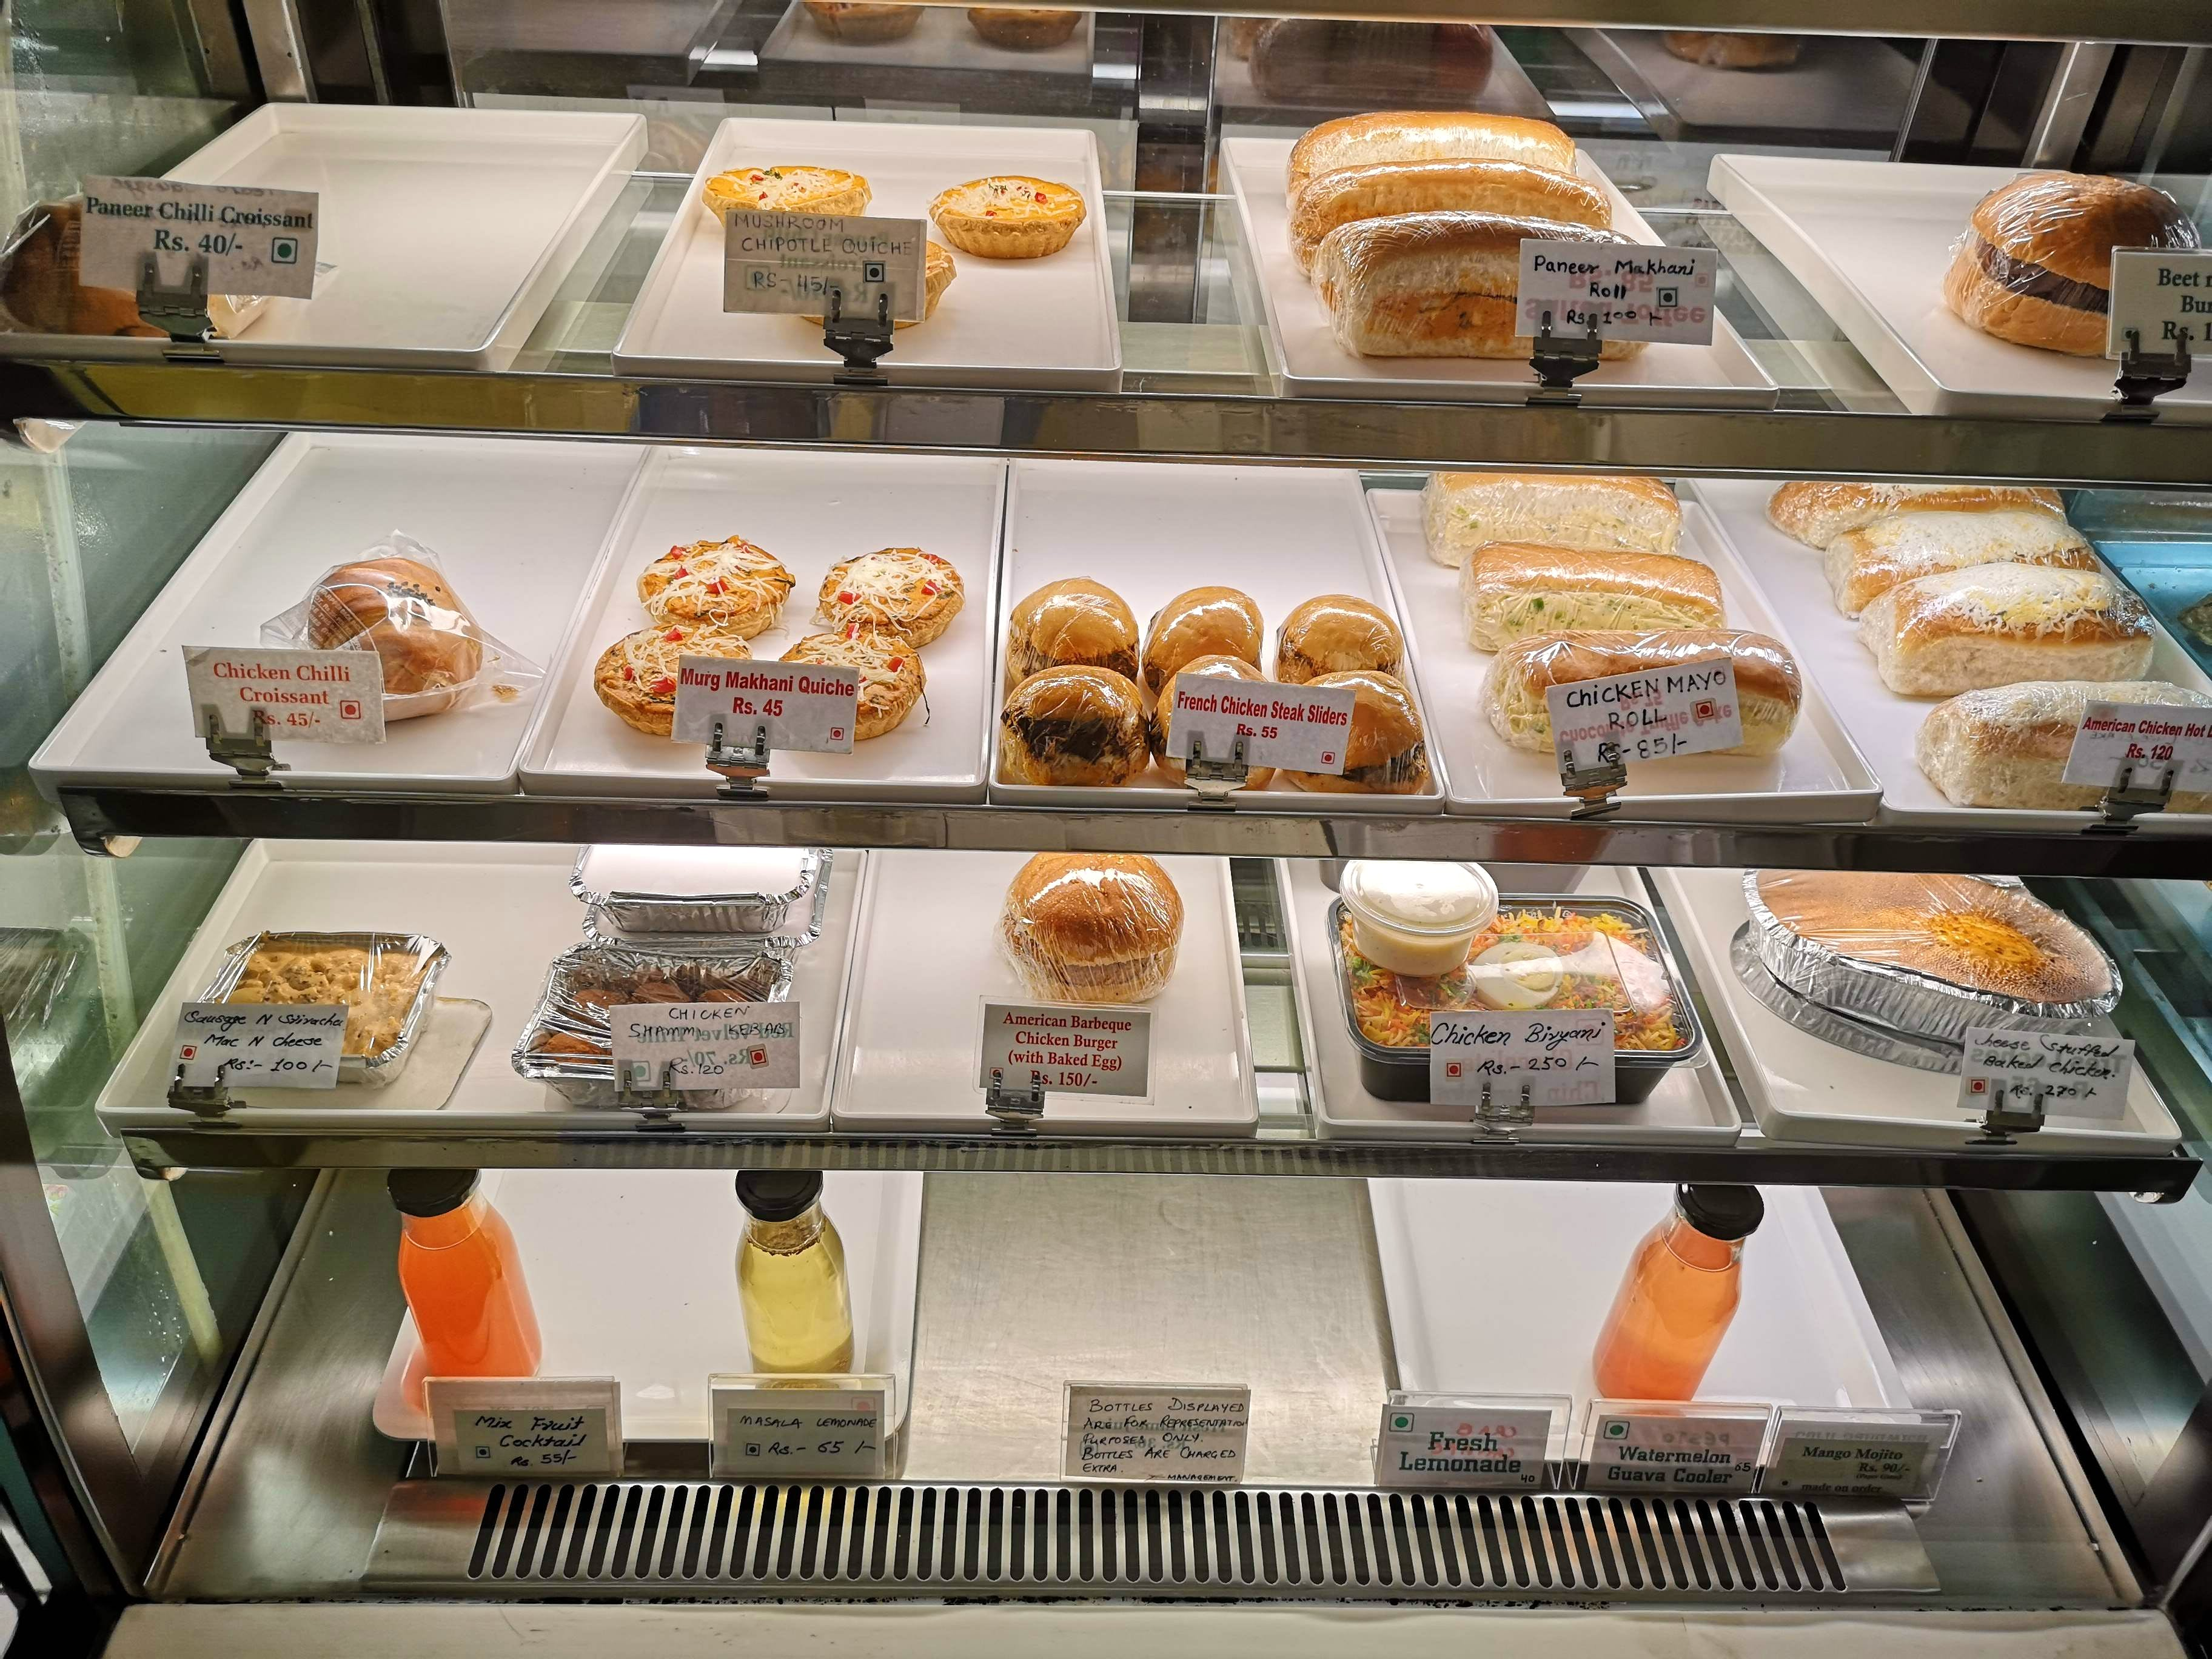 Bakery,Display case,Pâtisserie,Food,Baking,Pastry,Cuisine,Dish,Delicatessen,Delicacy